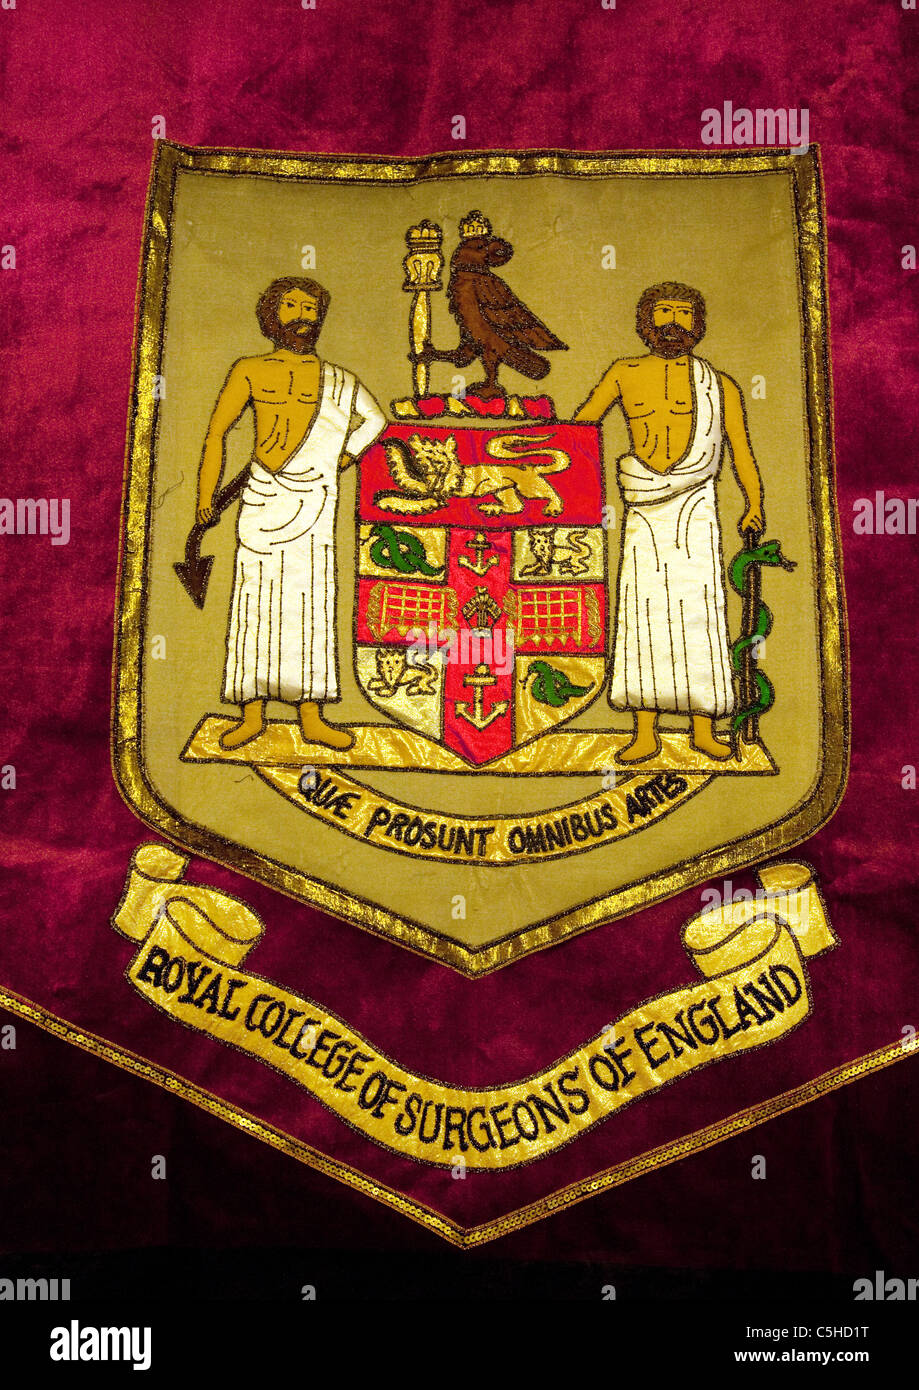 Tapestry of the coat of arms, the Royal College of Surgeons, London UK - Stock Image